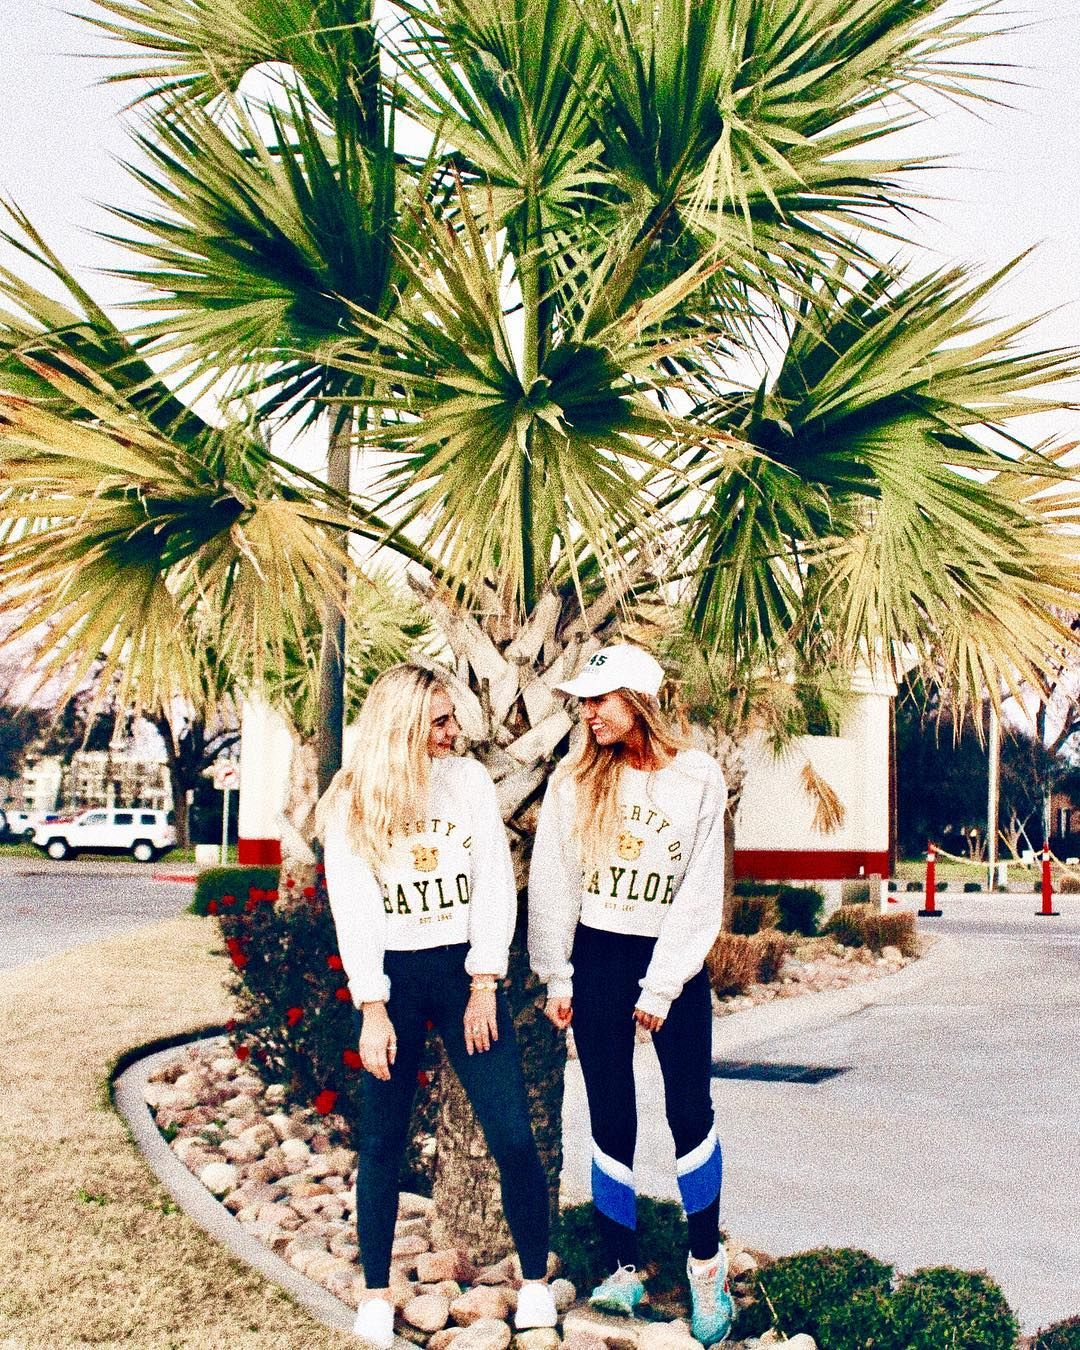 063a4b9837 Property of Baylor Cropped Sweatshirt